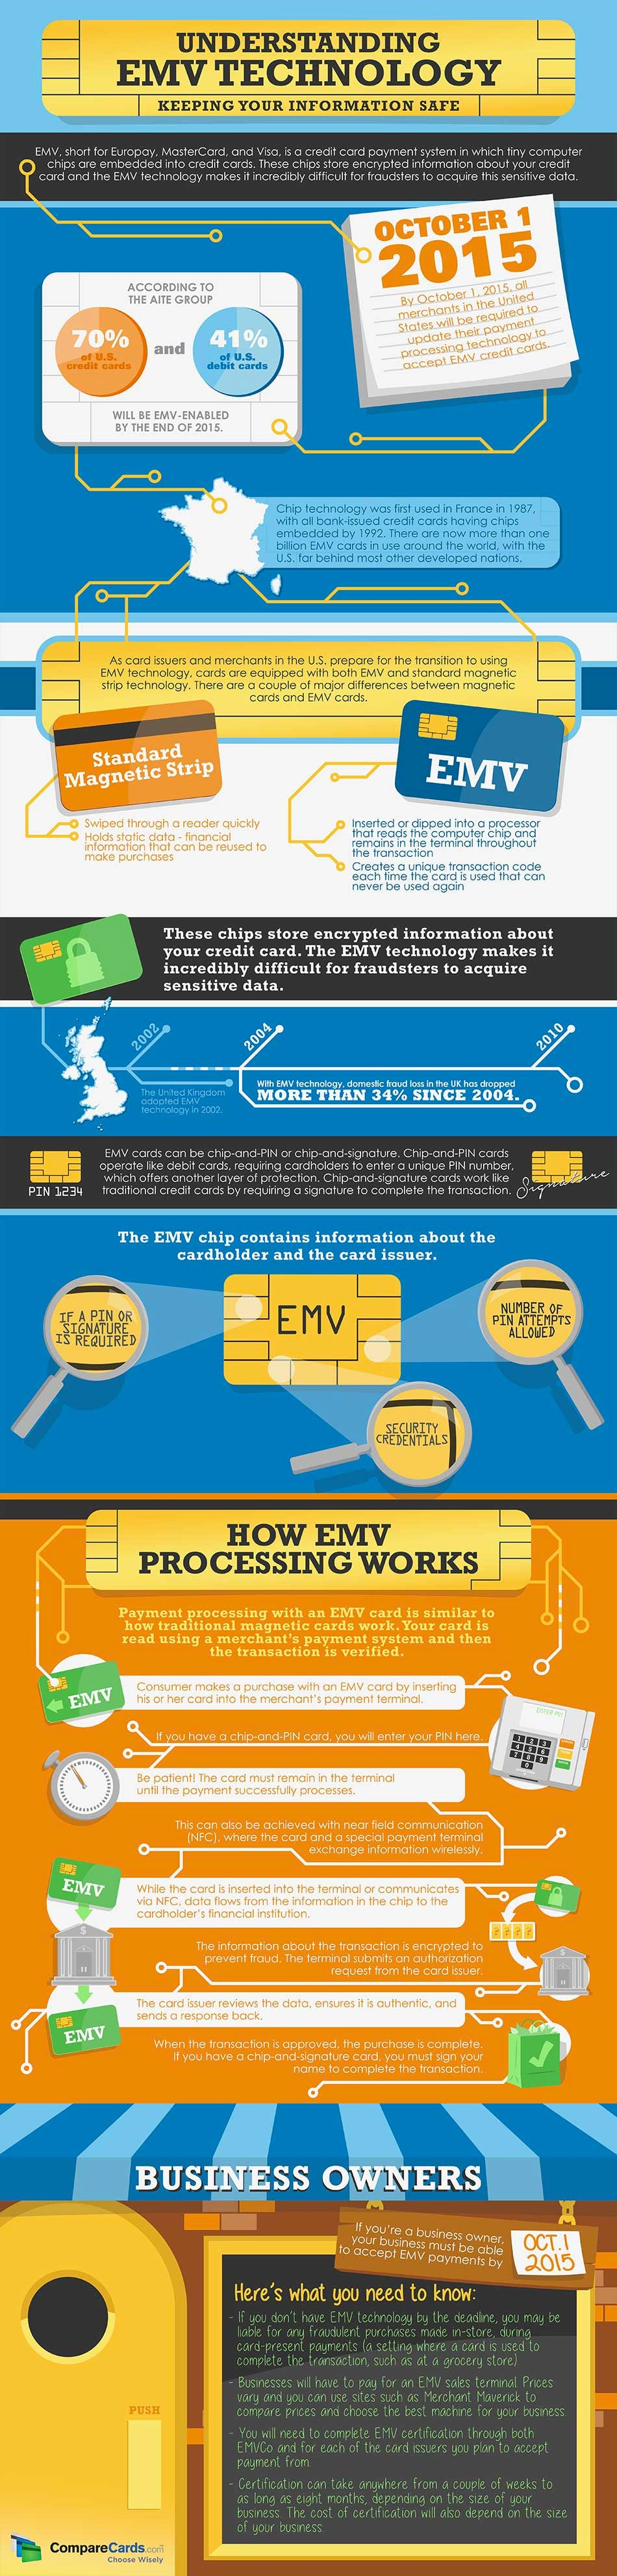 Say Hello to EMV, the Technology That Makes Credit Cards Safer (Infographic)